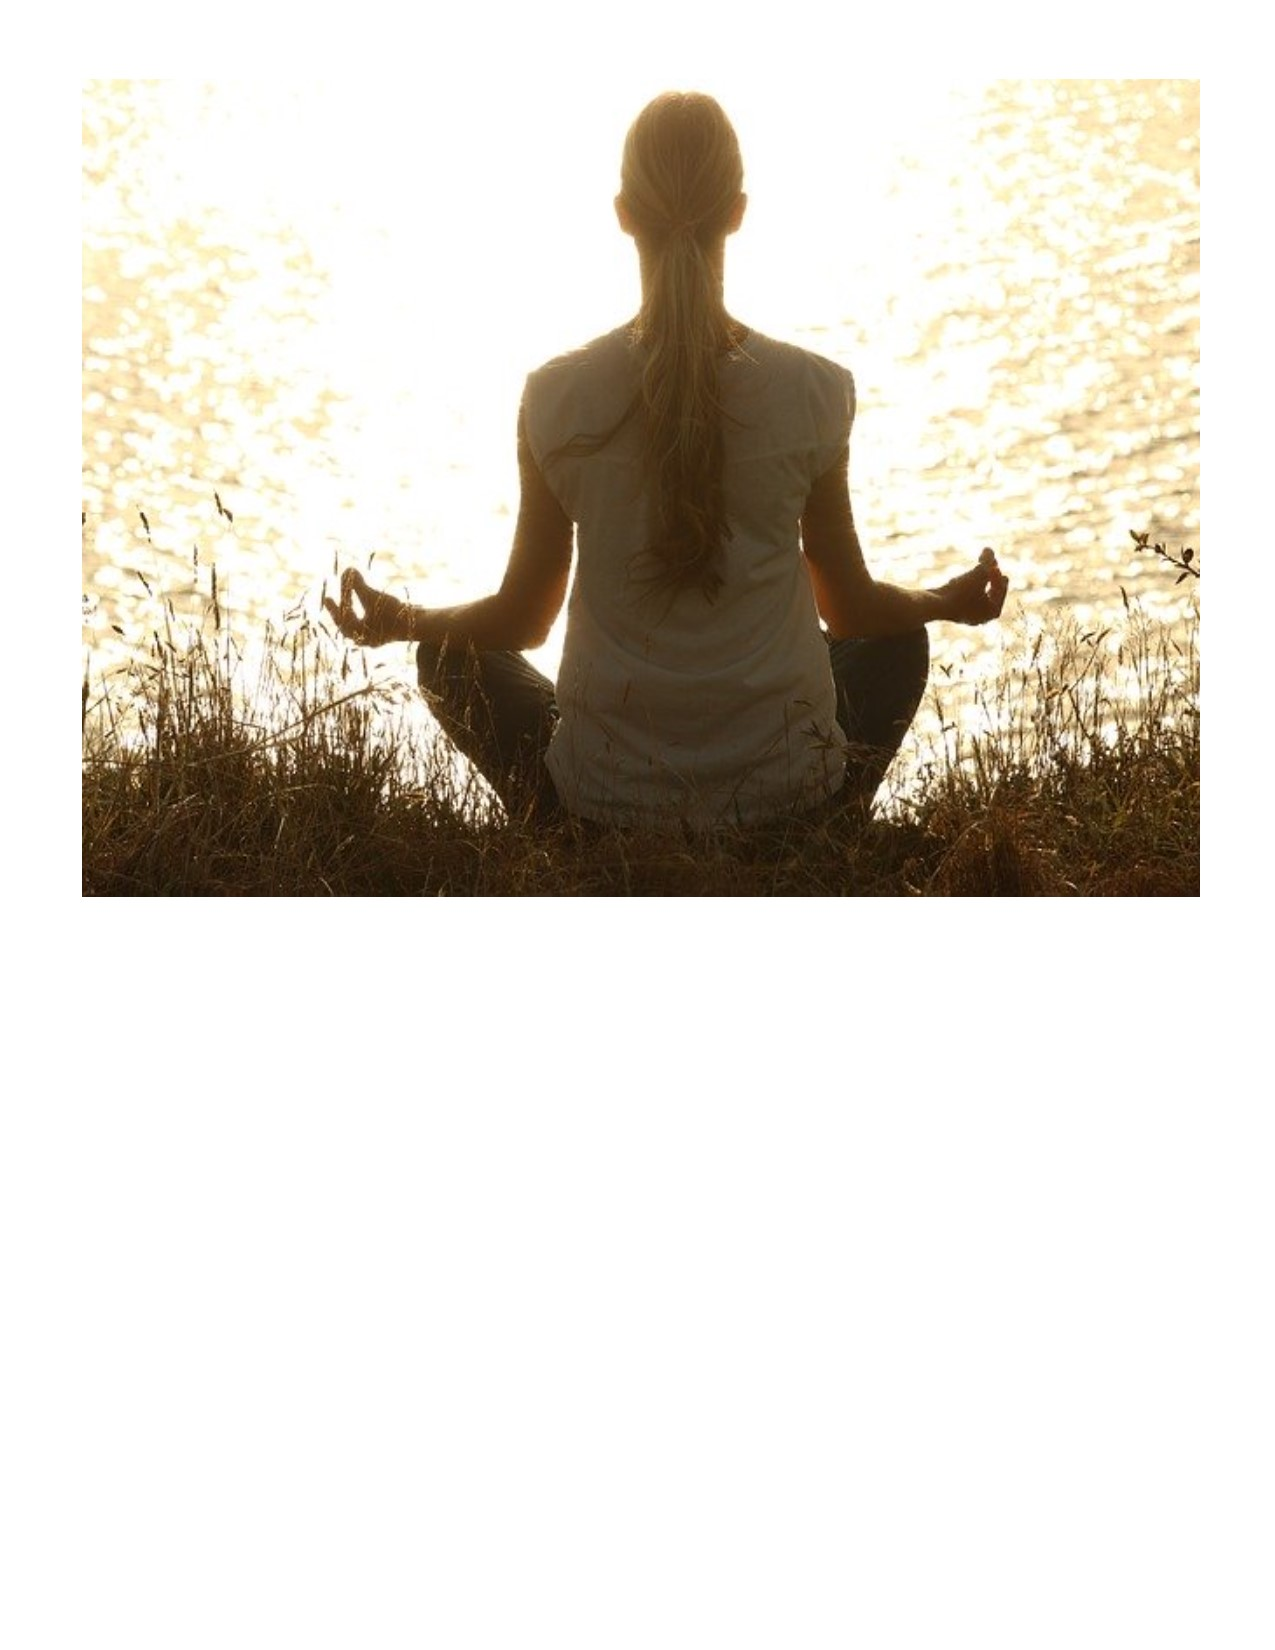 May is Meditation Month